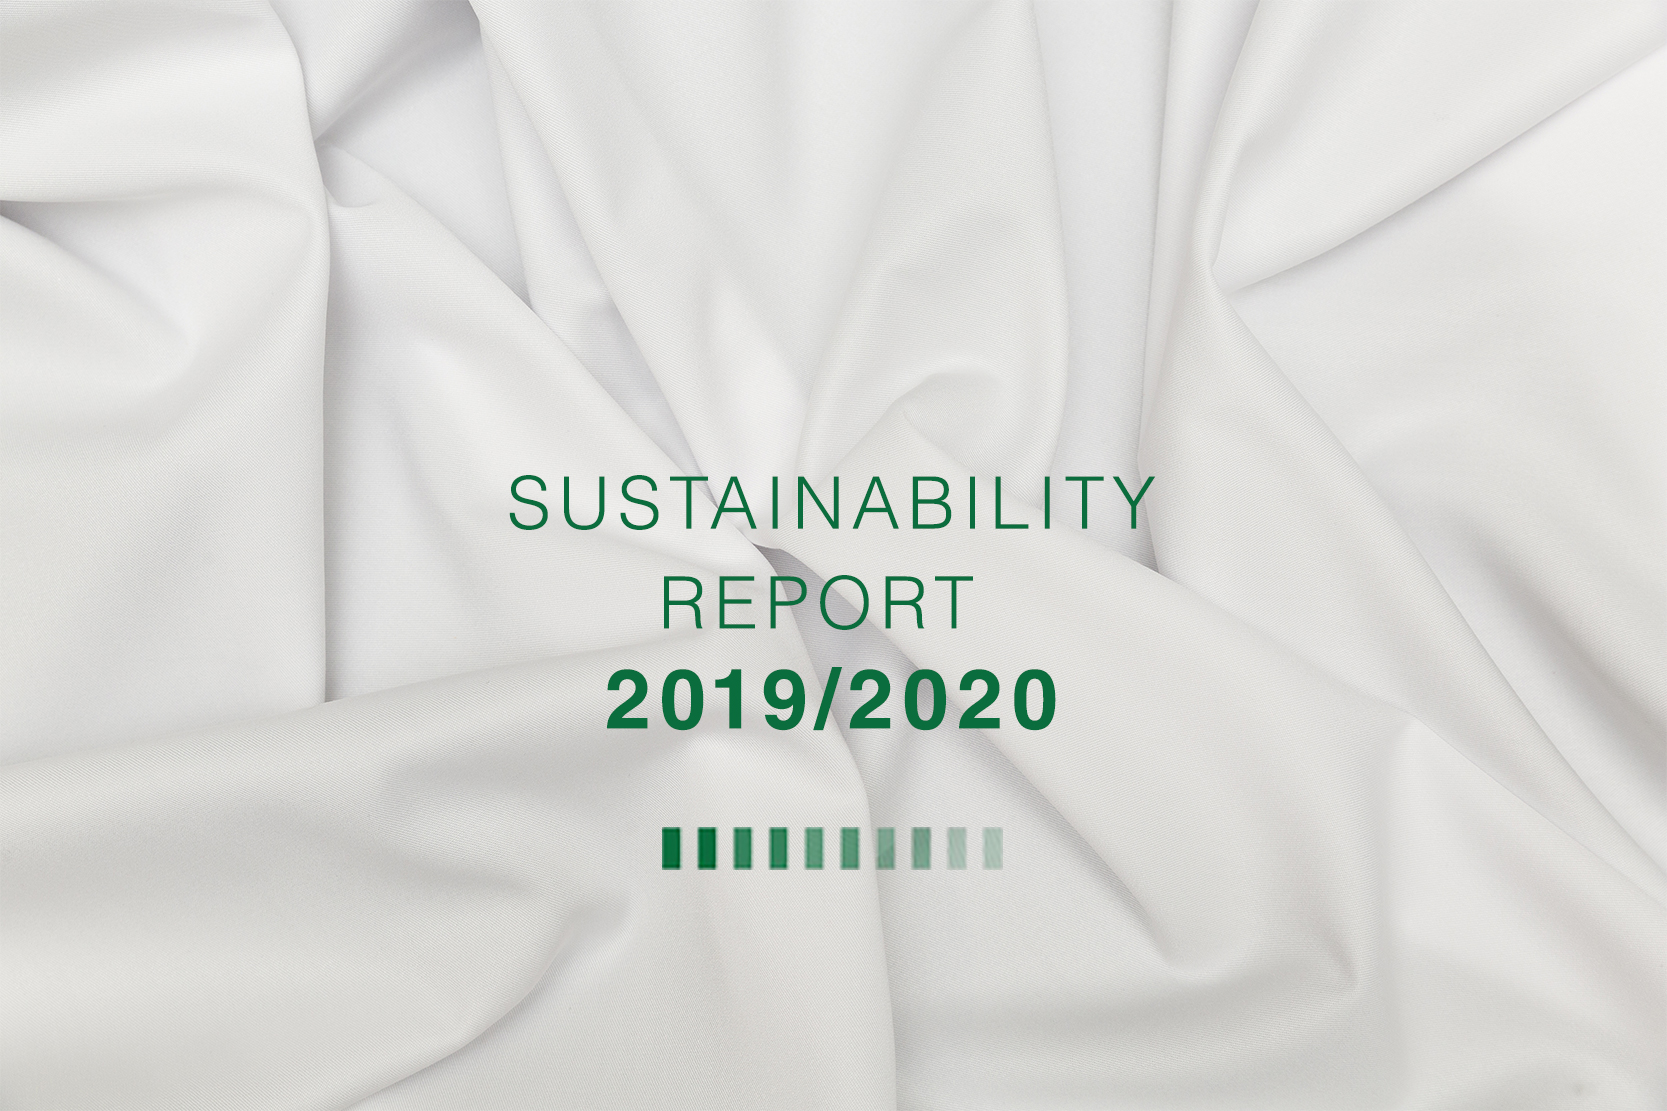 Our Corporate Social Responsibility Report 2019/2020 is on line